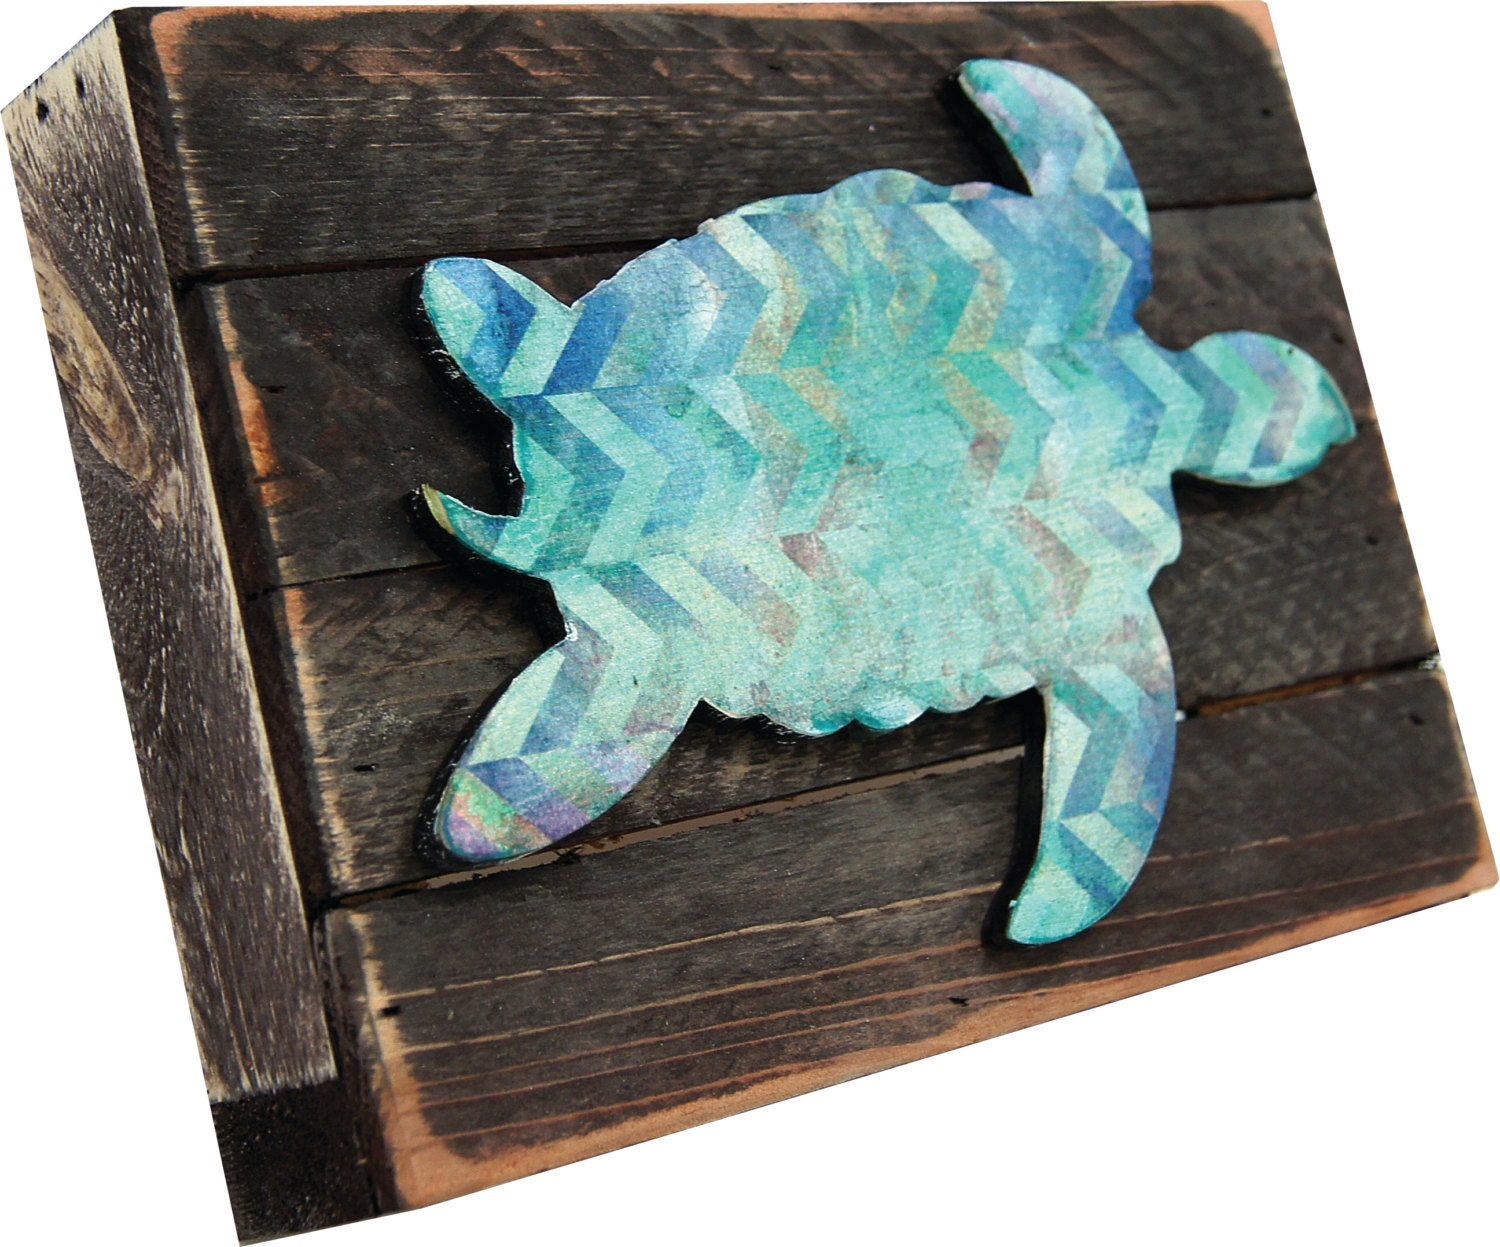 Sea Turtle Wall Art On Rustic Wooden Block Vintage Beach Decoration Home And Garden Decor Wall Hanging Kids Room Decor 98518